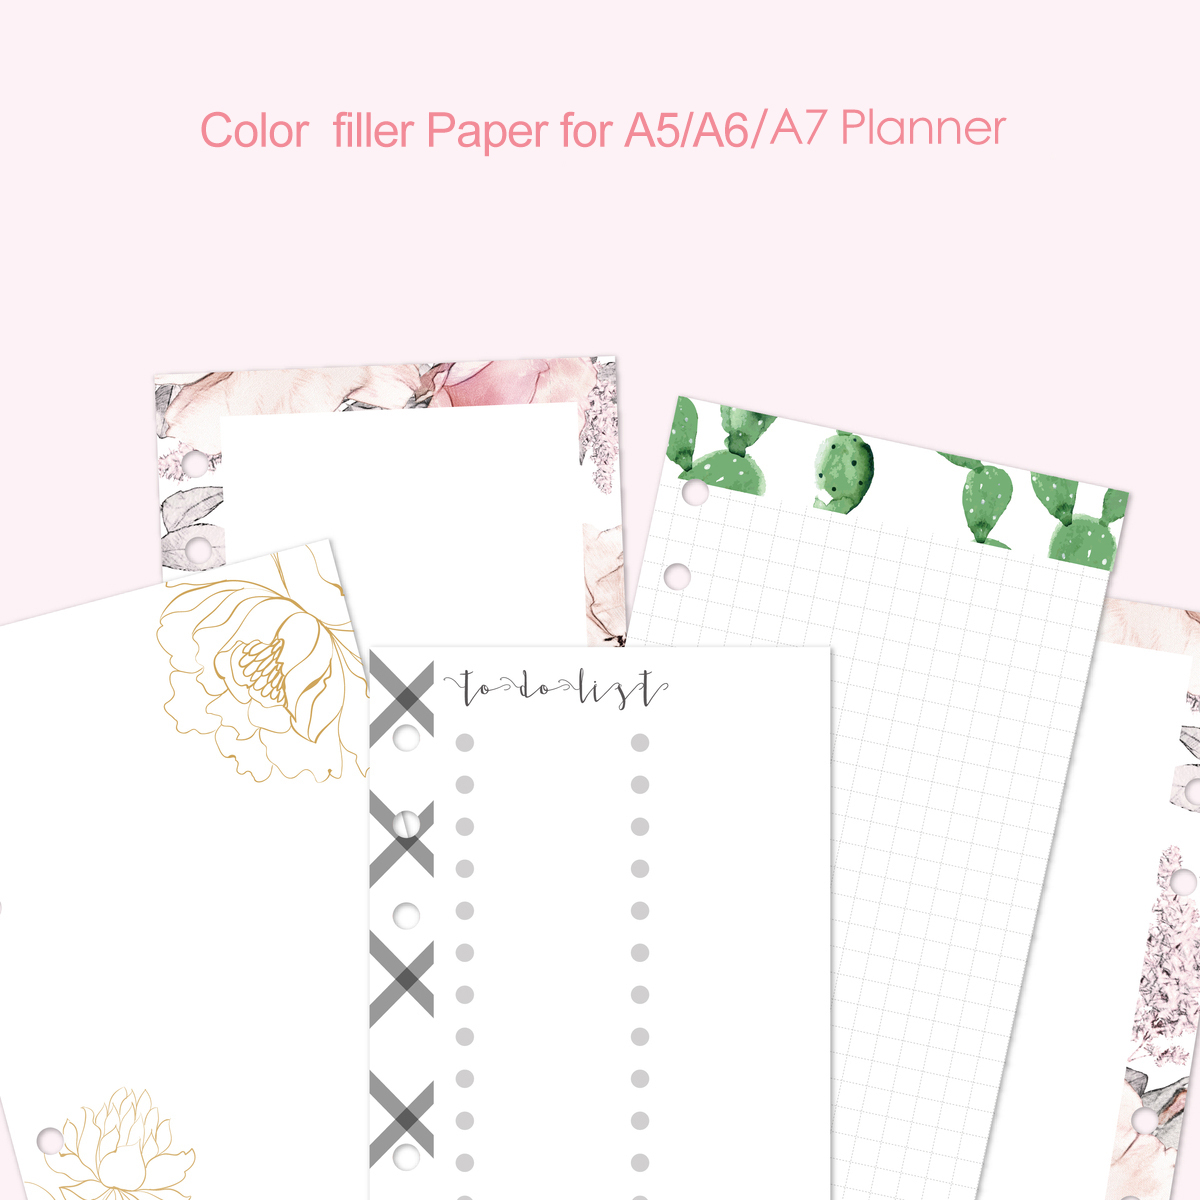 Fromthenon Korean Cute Filler Paper Refill For Filofax Spiral Notebook A5A6A7 Planner Color Grid Blank Todo List Core Stationery